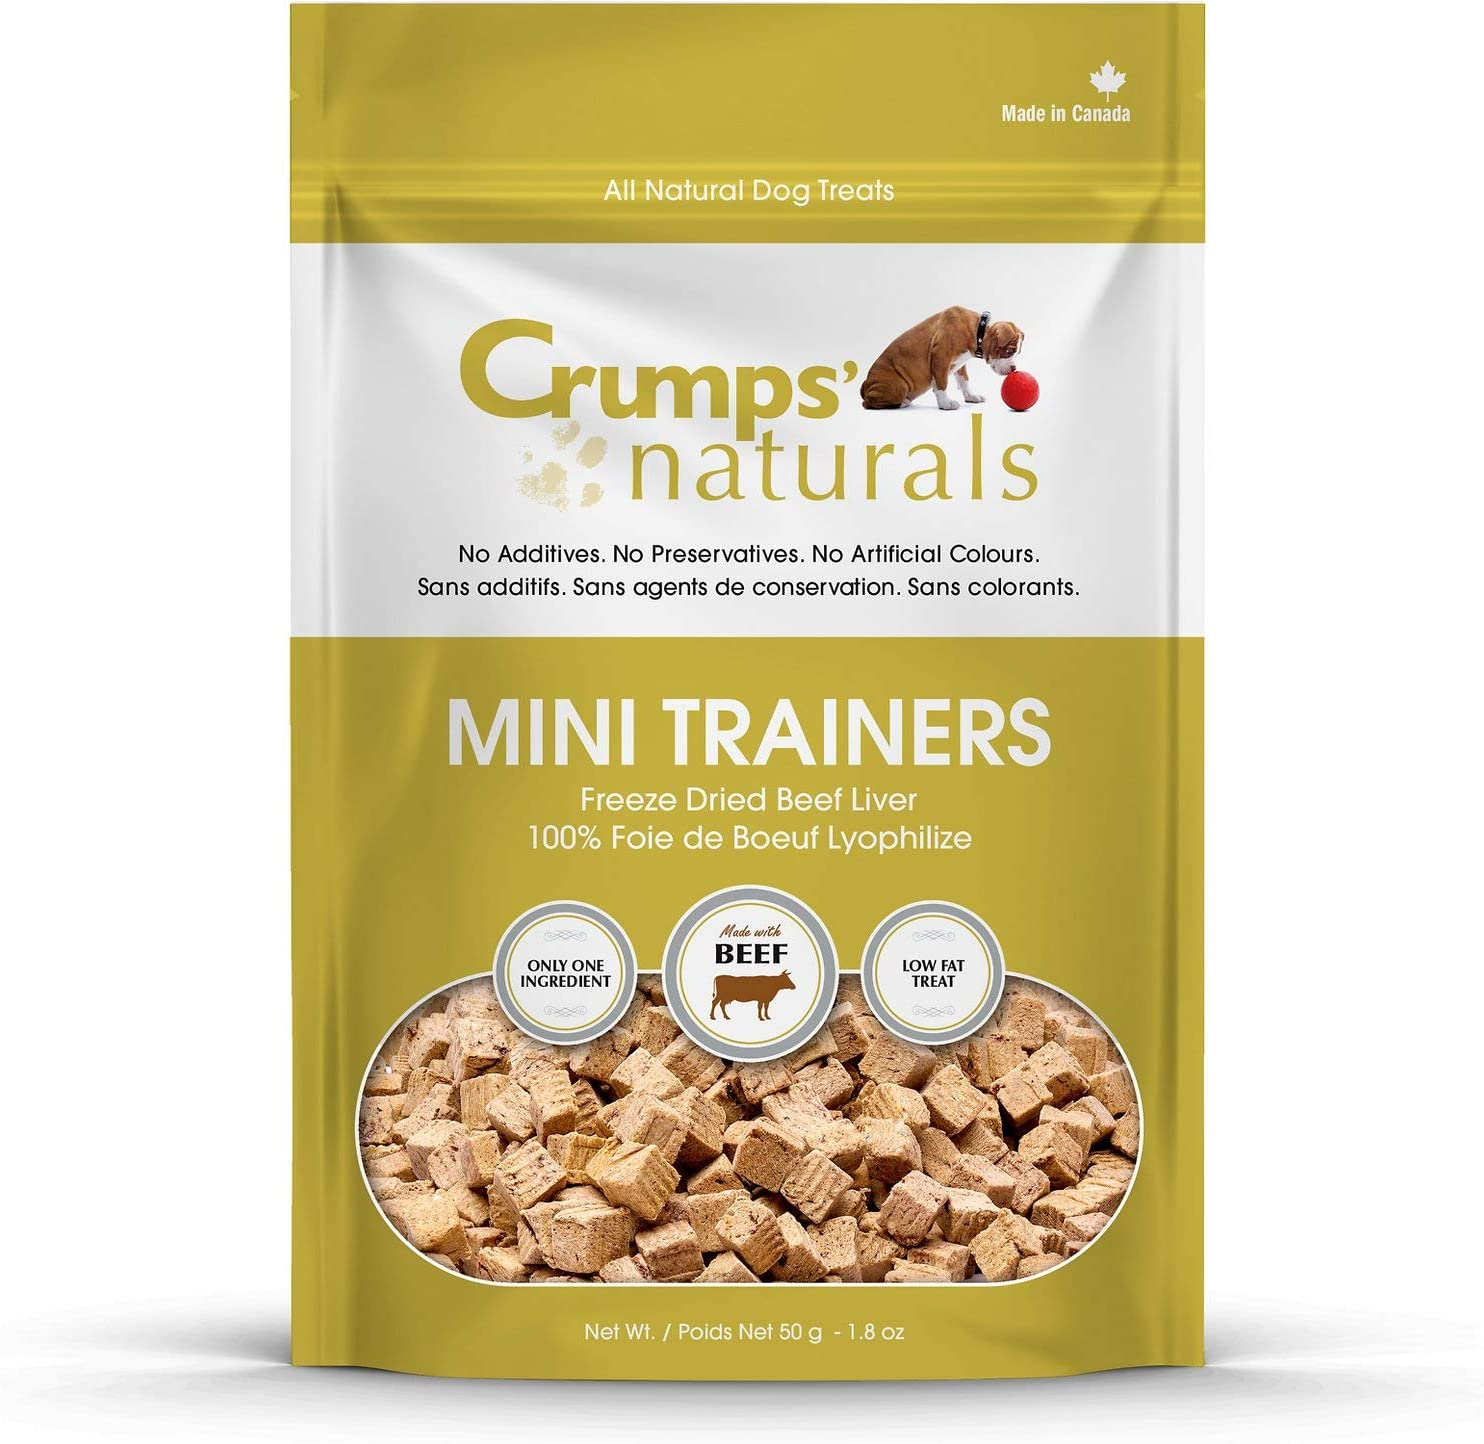 1 Pack Crumps Naturals Mini Trainers Freeze Dried Beef Liver 3 Pack 50g//1.8 oz